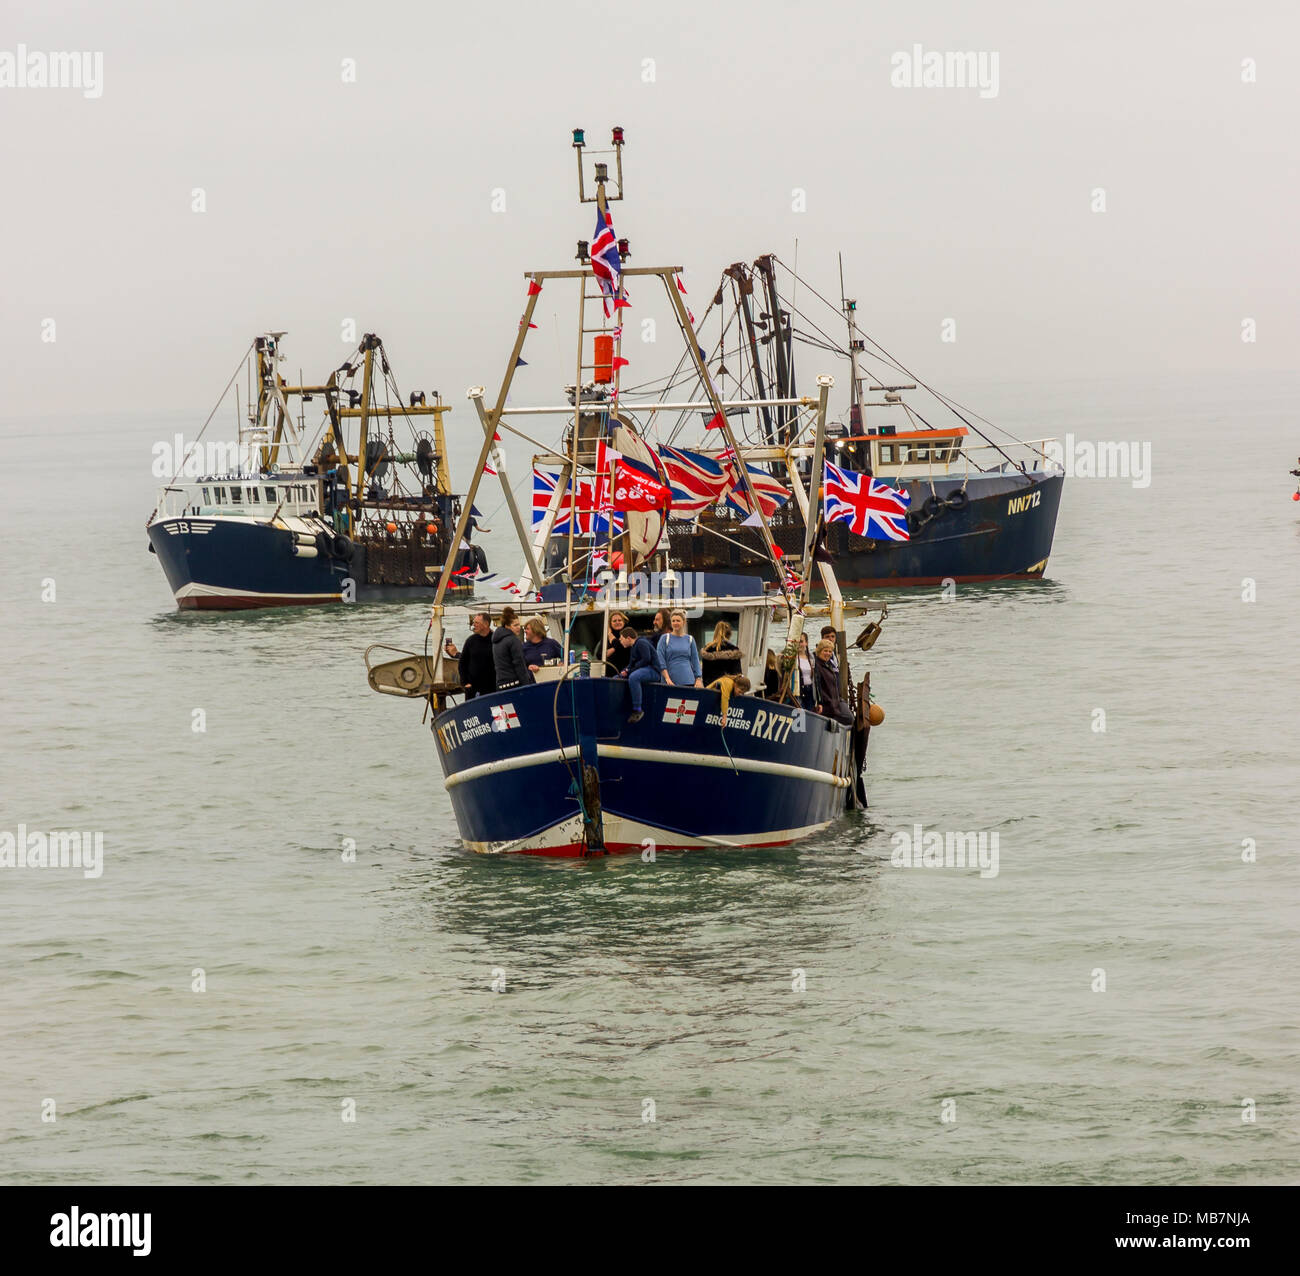 Hasting, East Sussex, UK. 8th April 2018. Fisherman from the South Coast fishing ports of Hastings, Newhaven, Rye and Eastbourne gather at Hastings to protest at the Governments decision not to take back full control of British waters when the UK leaves the EU next year. The Department for Environment, Food and Rural Affairs said it believed a transition deal until 2021 would safeguard fishing communities. Credit: Alan Fraser - Stock Image